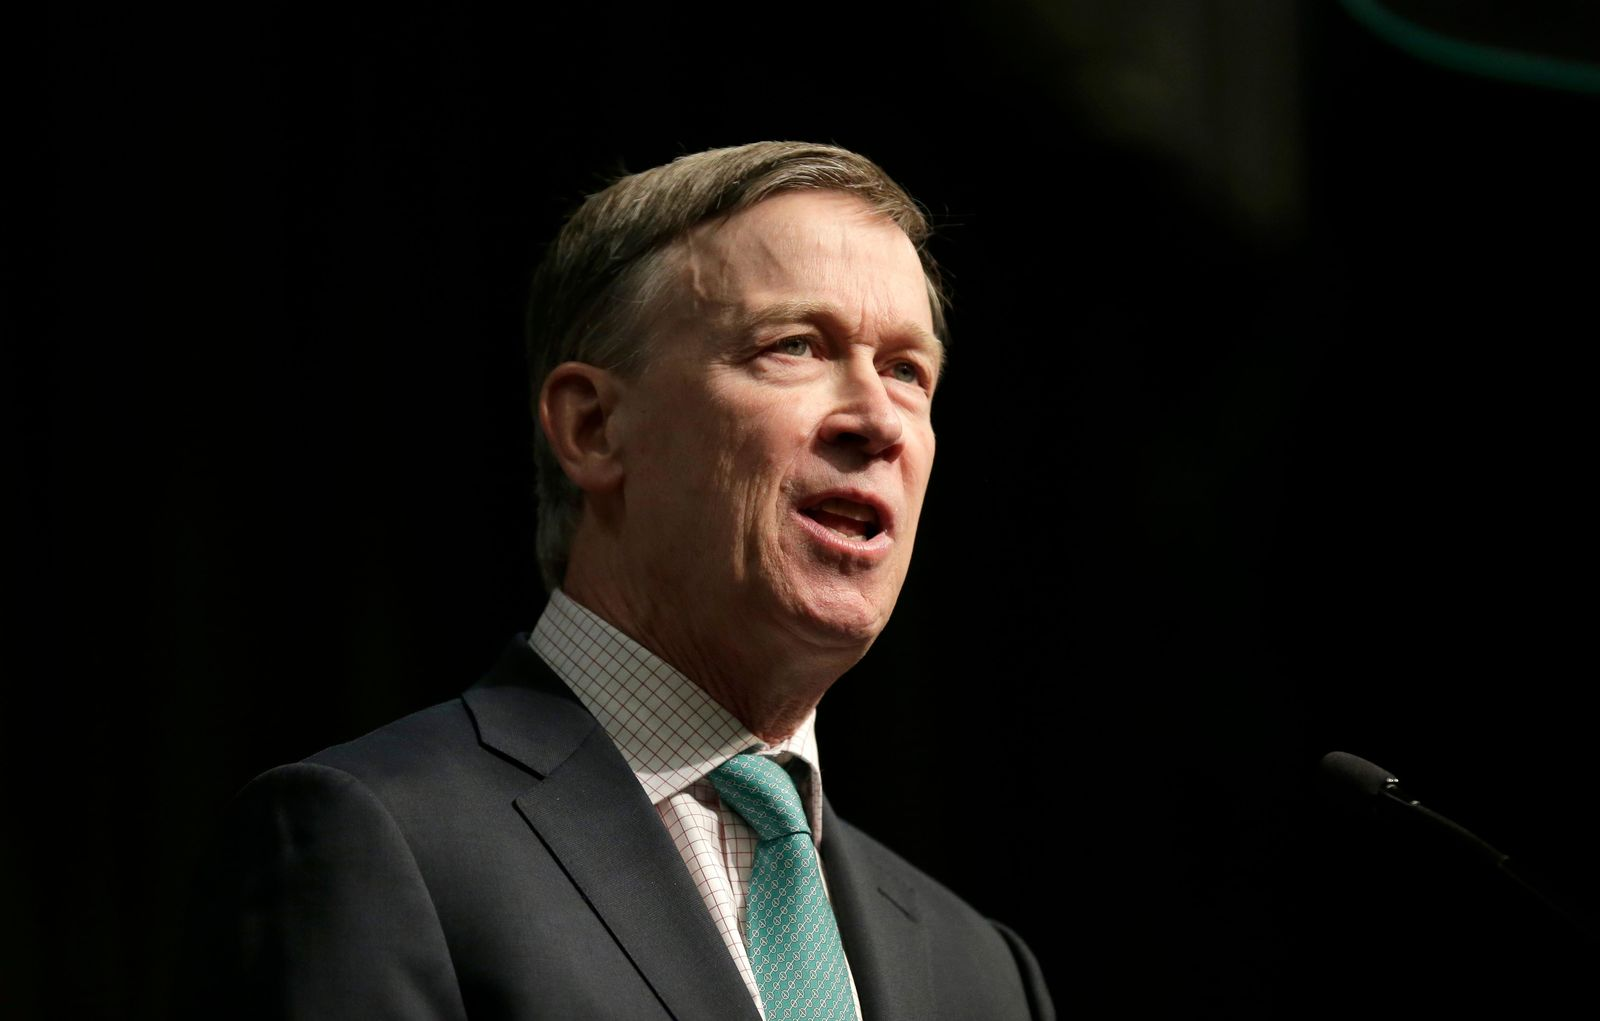 Former Colorado Gov. John Hickenlooper, a candidate for the 2020 Democratic presidential nomination, addresses the National Action Network Convention in New York, Friday, April 5, 2019. (AP Photo/Seth Wenig)